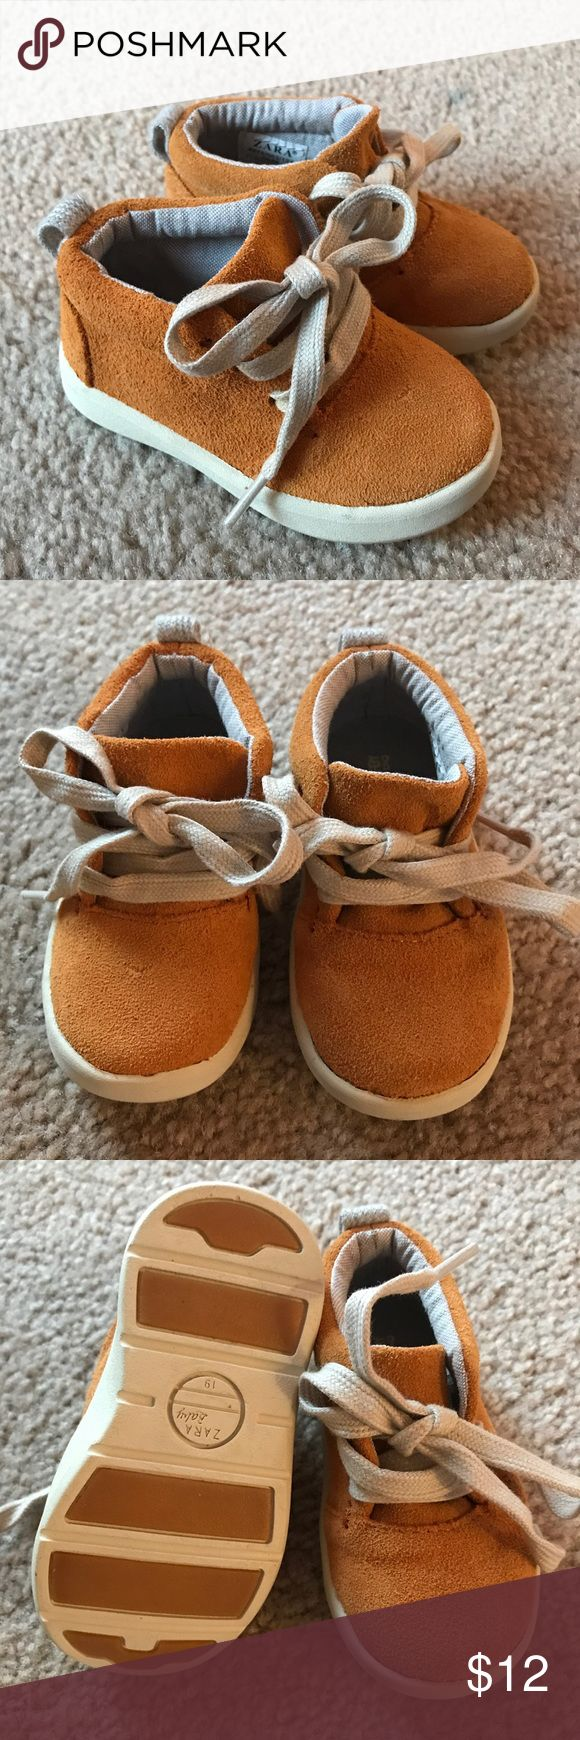 Zara Baby Shoe Size 3 1/2 - UK 19 In almost new condition. Gender neutral, perfect for fall. Zara Shoes Baby & Walker